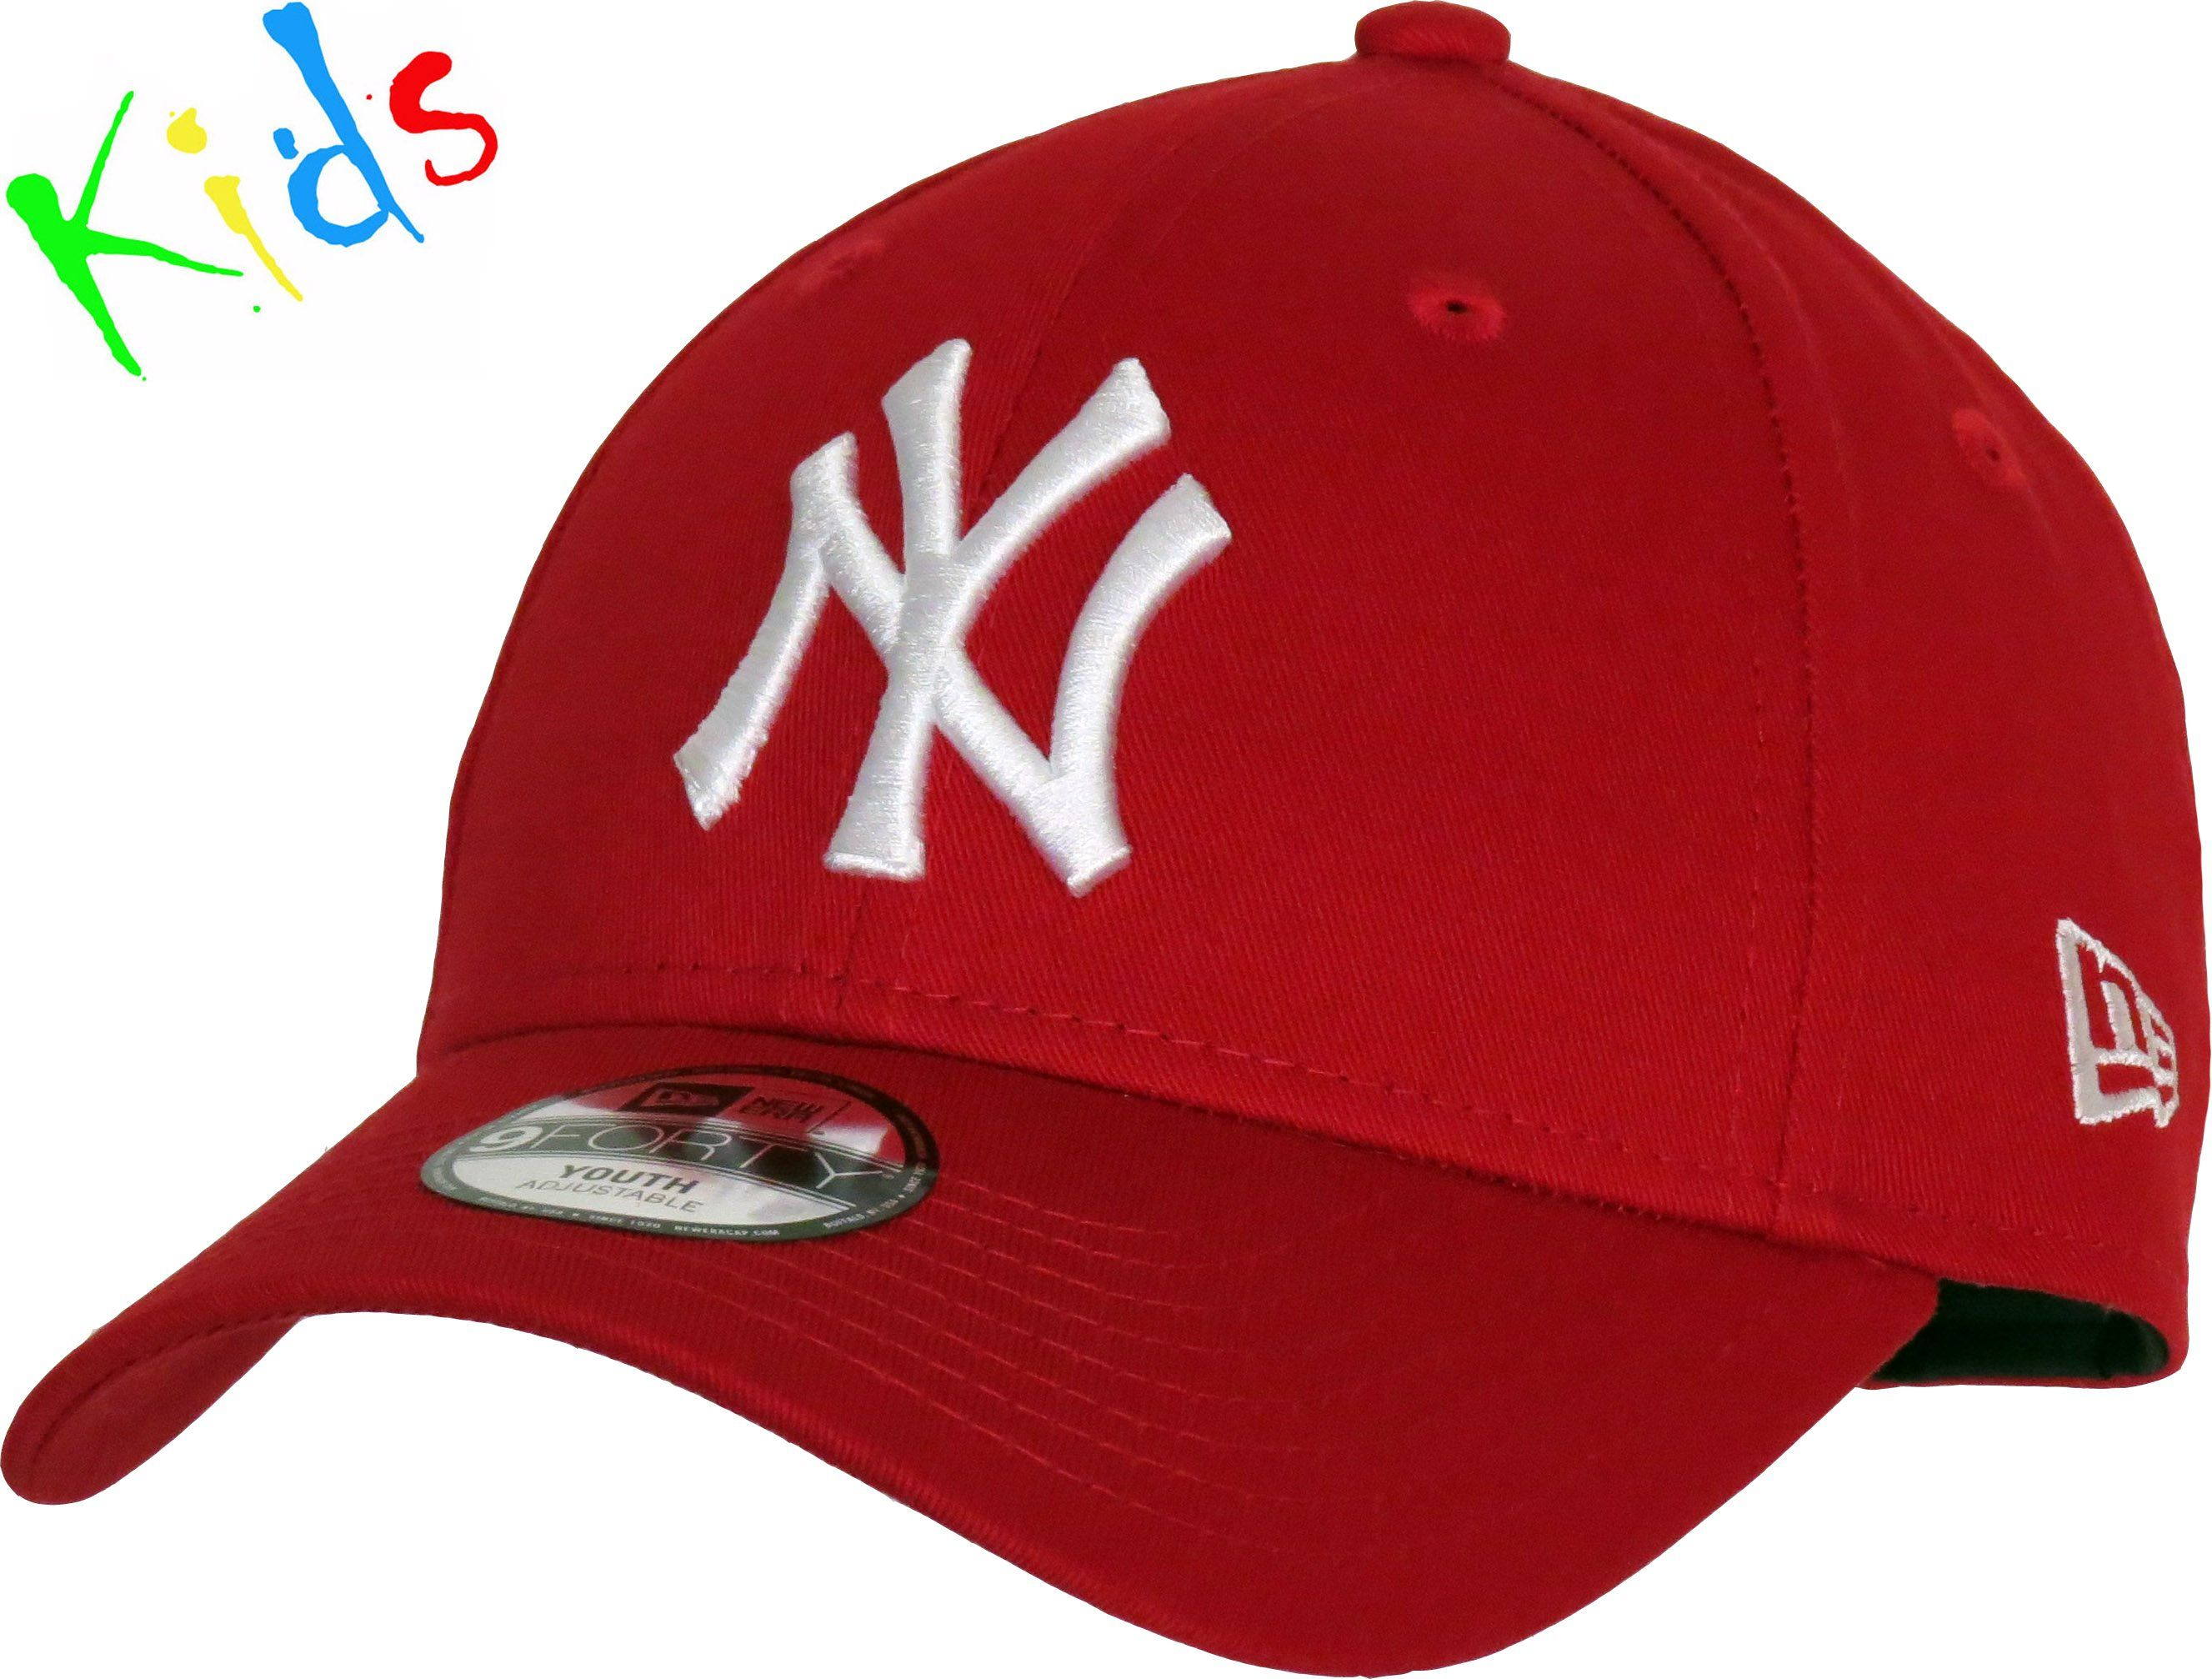 f0ca22410de NY Yankees New Era 940 Kids Scarlet Baseball Cap (Age 4 - 10 Years ...